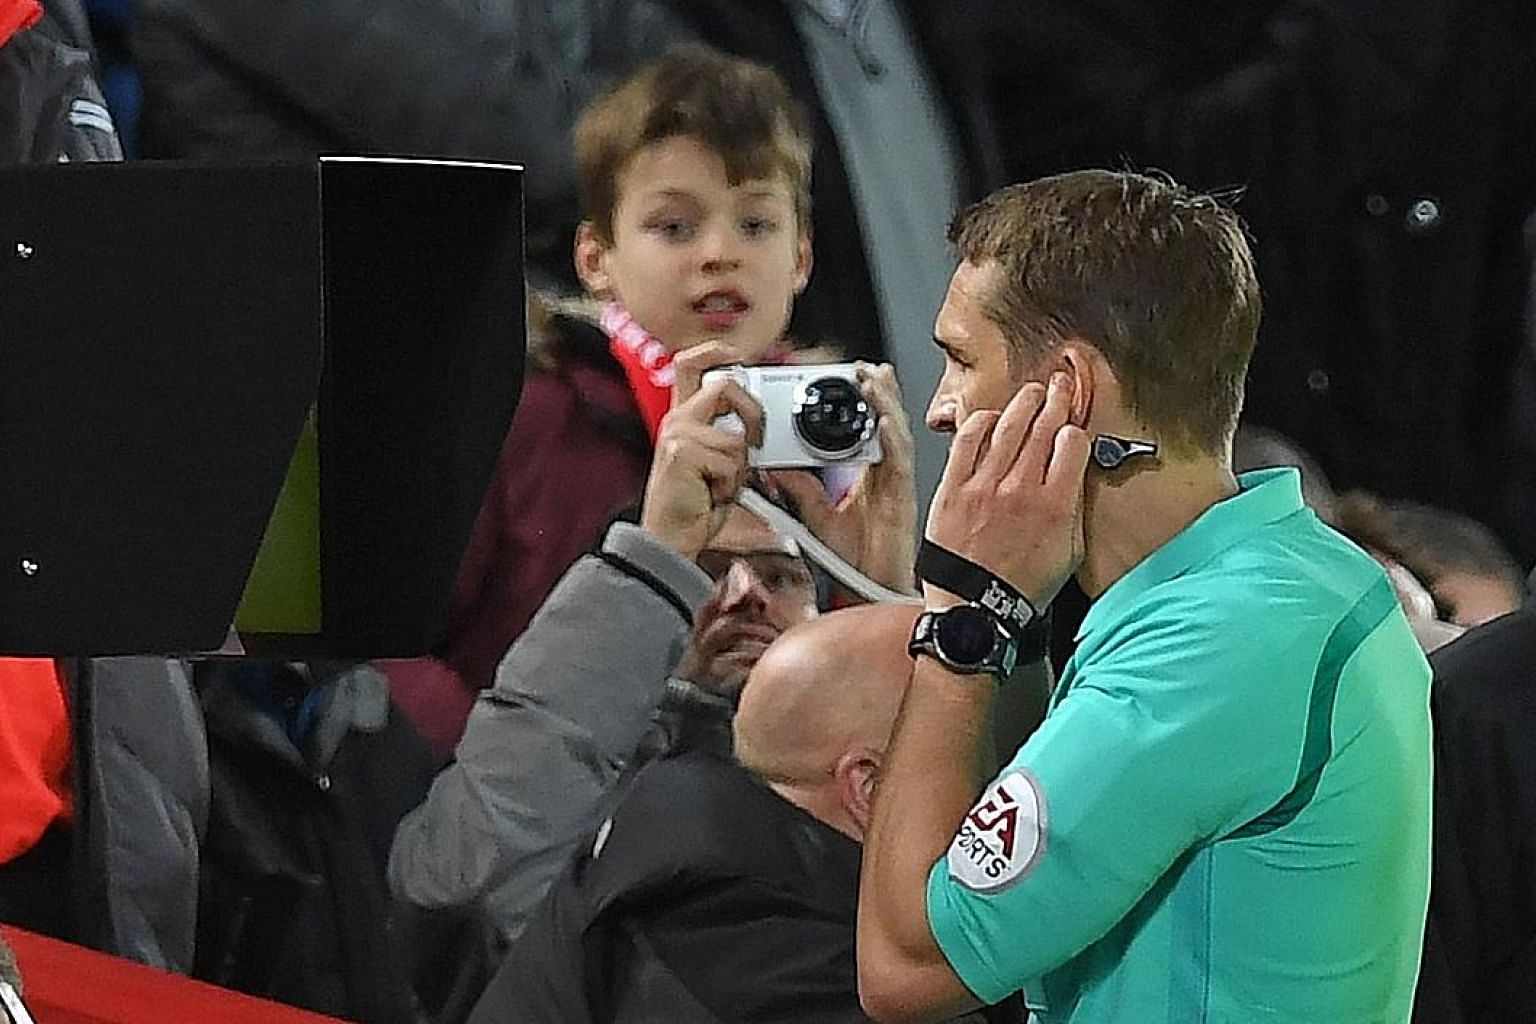 Referee Craig Pawson checking the pitchside screen after speaking to the VAR before giving Liverpool a penalty during the FA Cup match between Liverpool and West Bromwich Albion at Anfield in January.